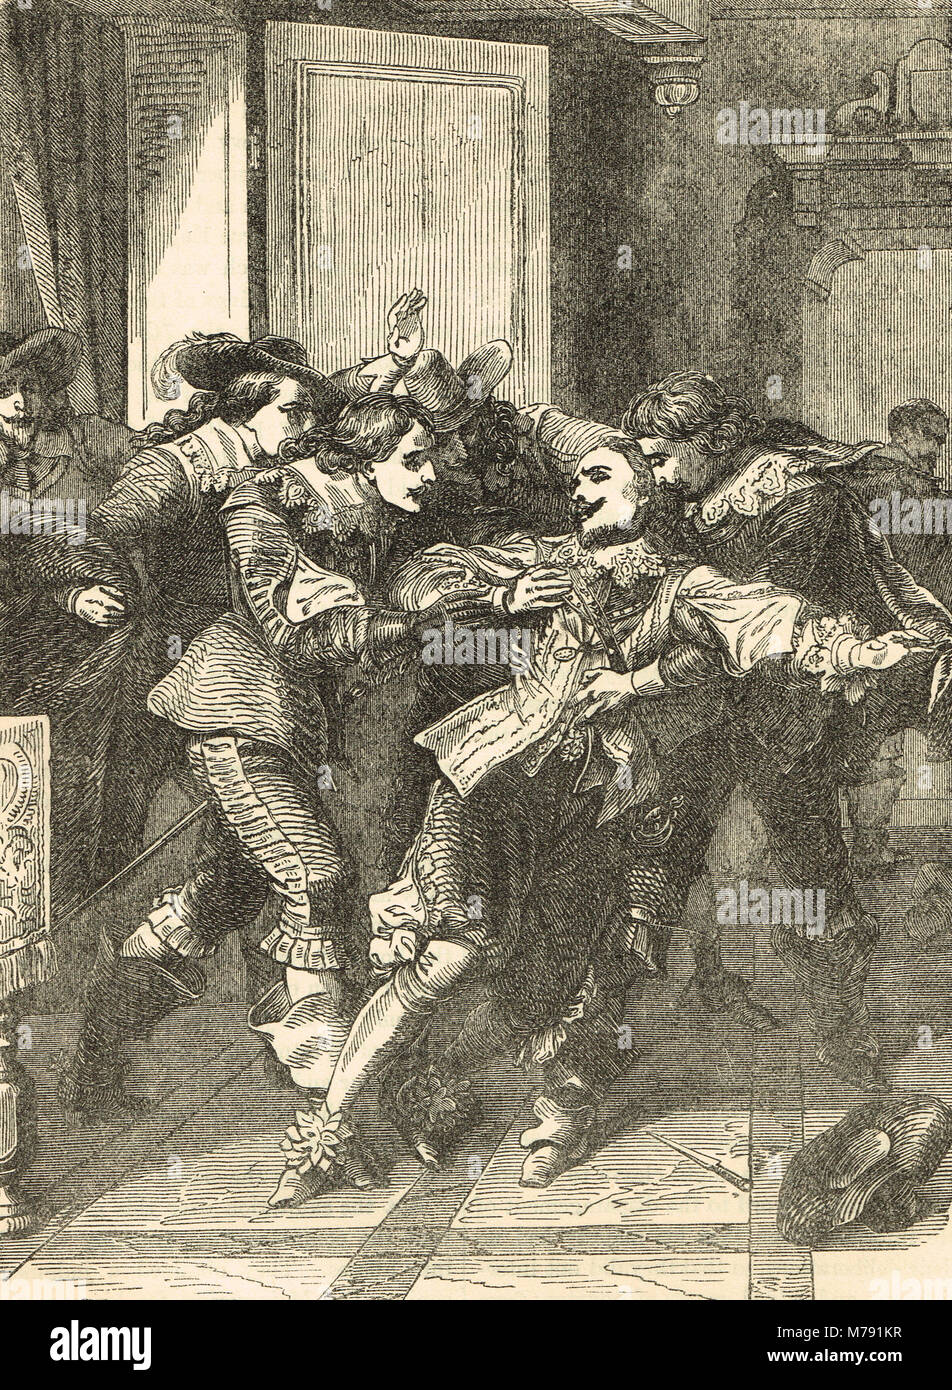 The assassination of George Villiers, 1st Duke of Buckingham, 23 August 1628 - Stock Image